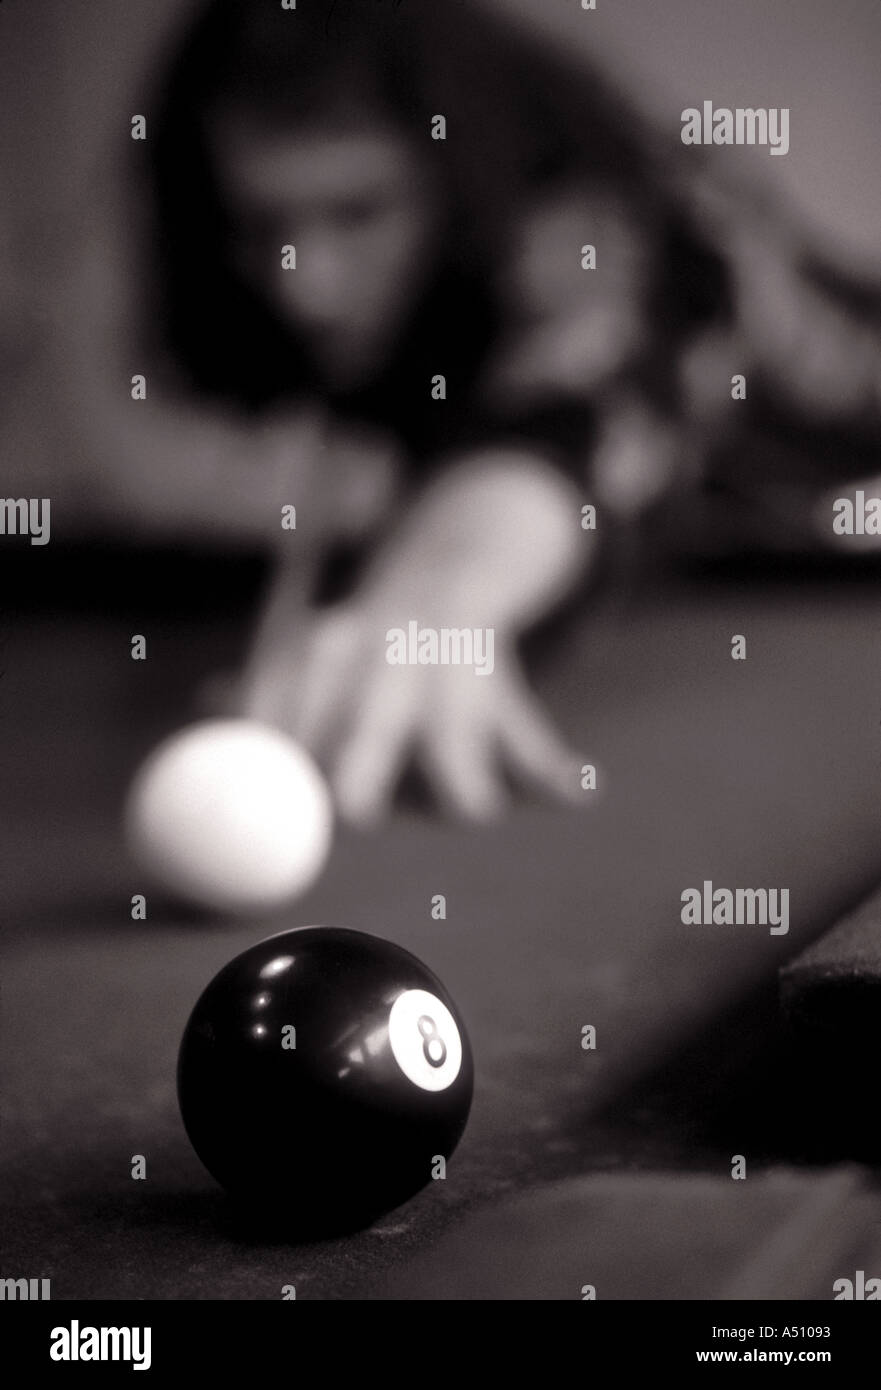 Man playing pool in a billiards hall Black and white image - Stock Image